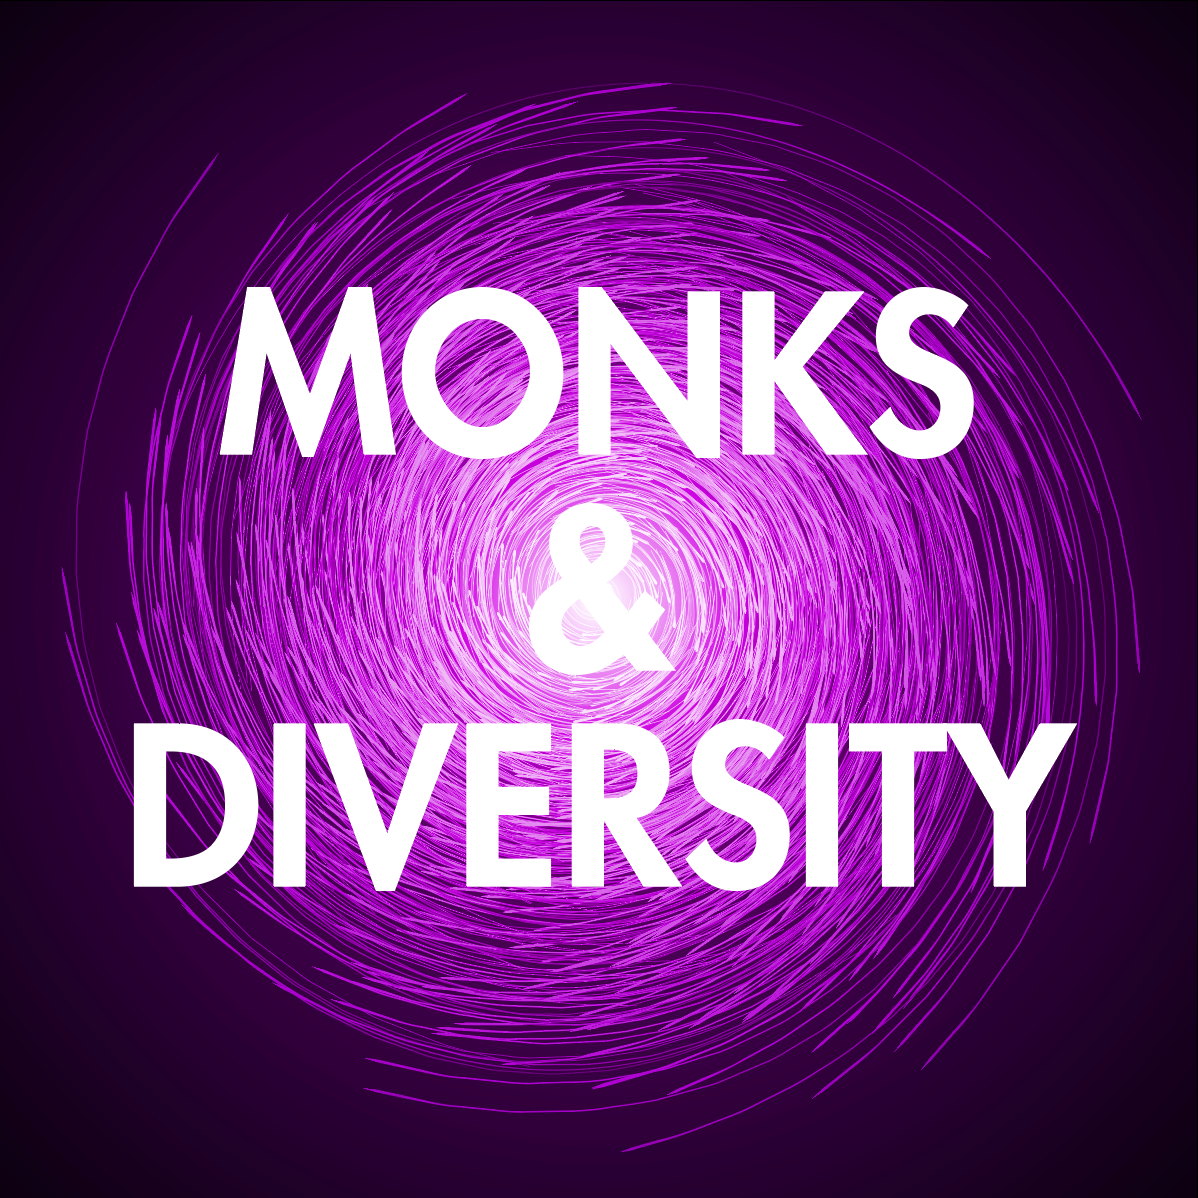 Contemporary Monastic Communities Research Project